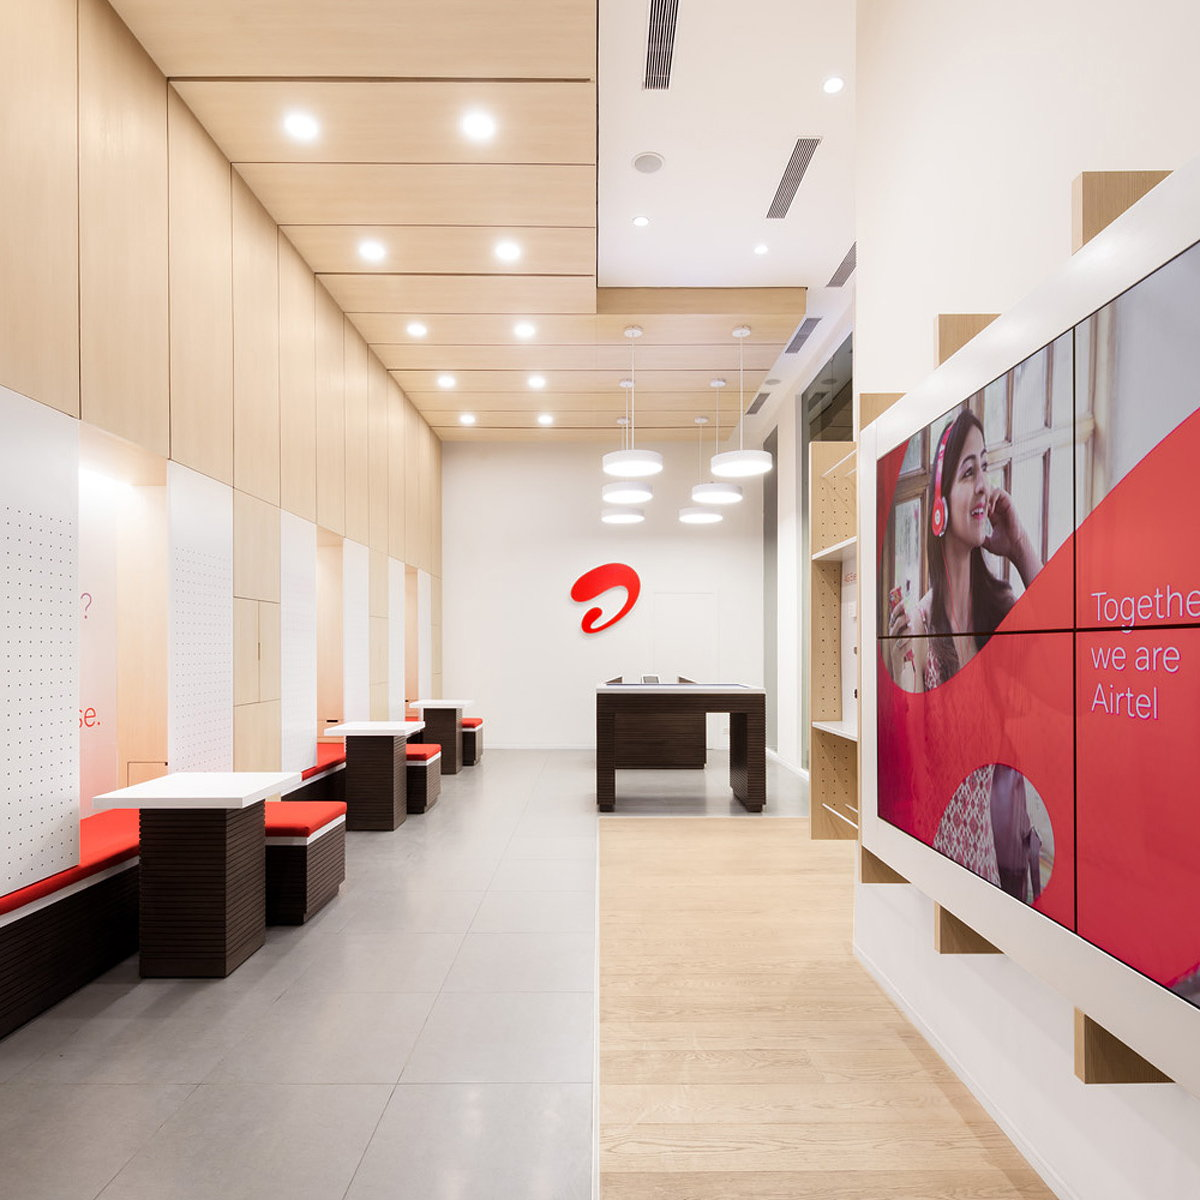 Eight Inc. Transforms The Airtel Customer Experience